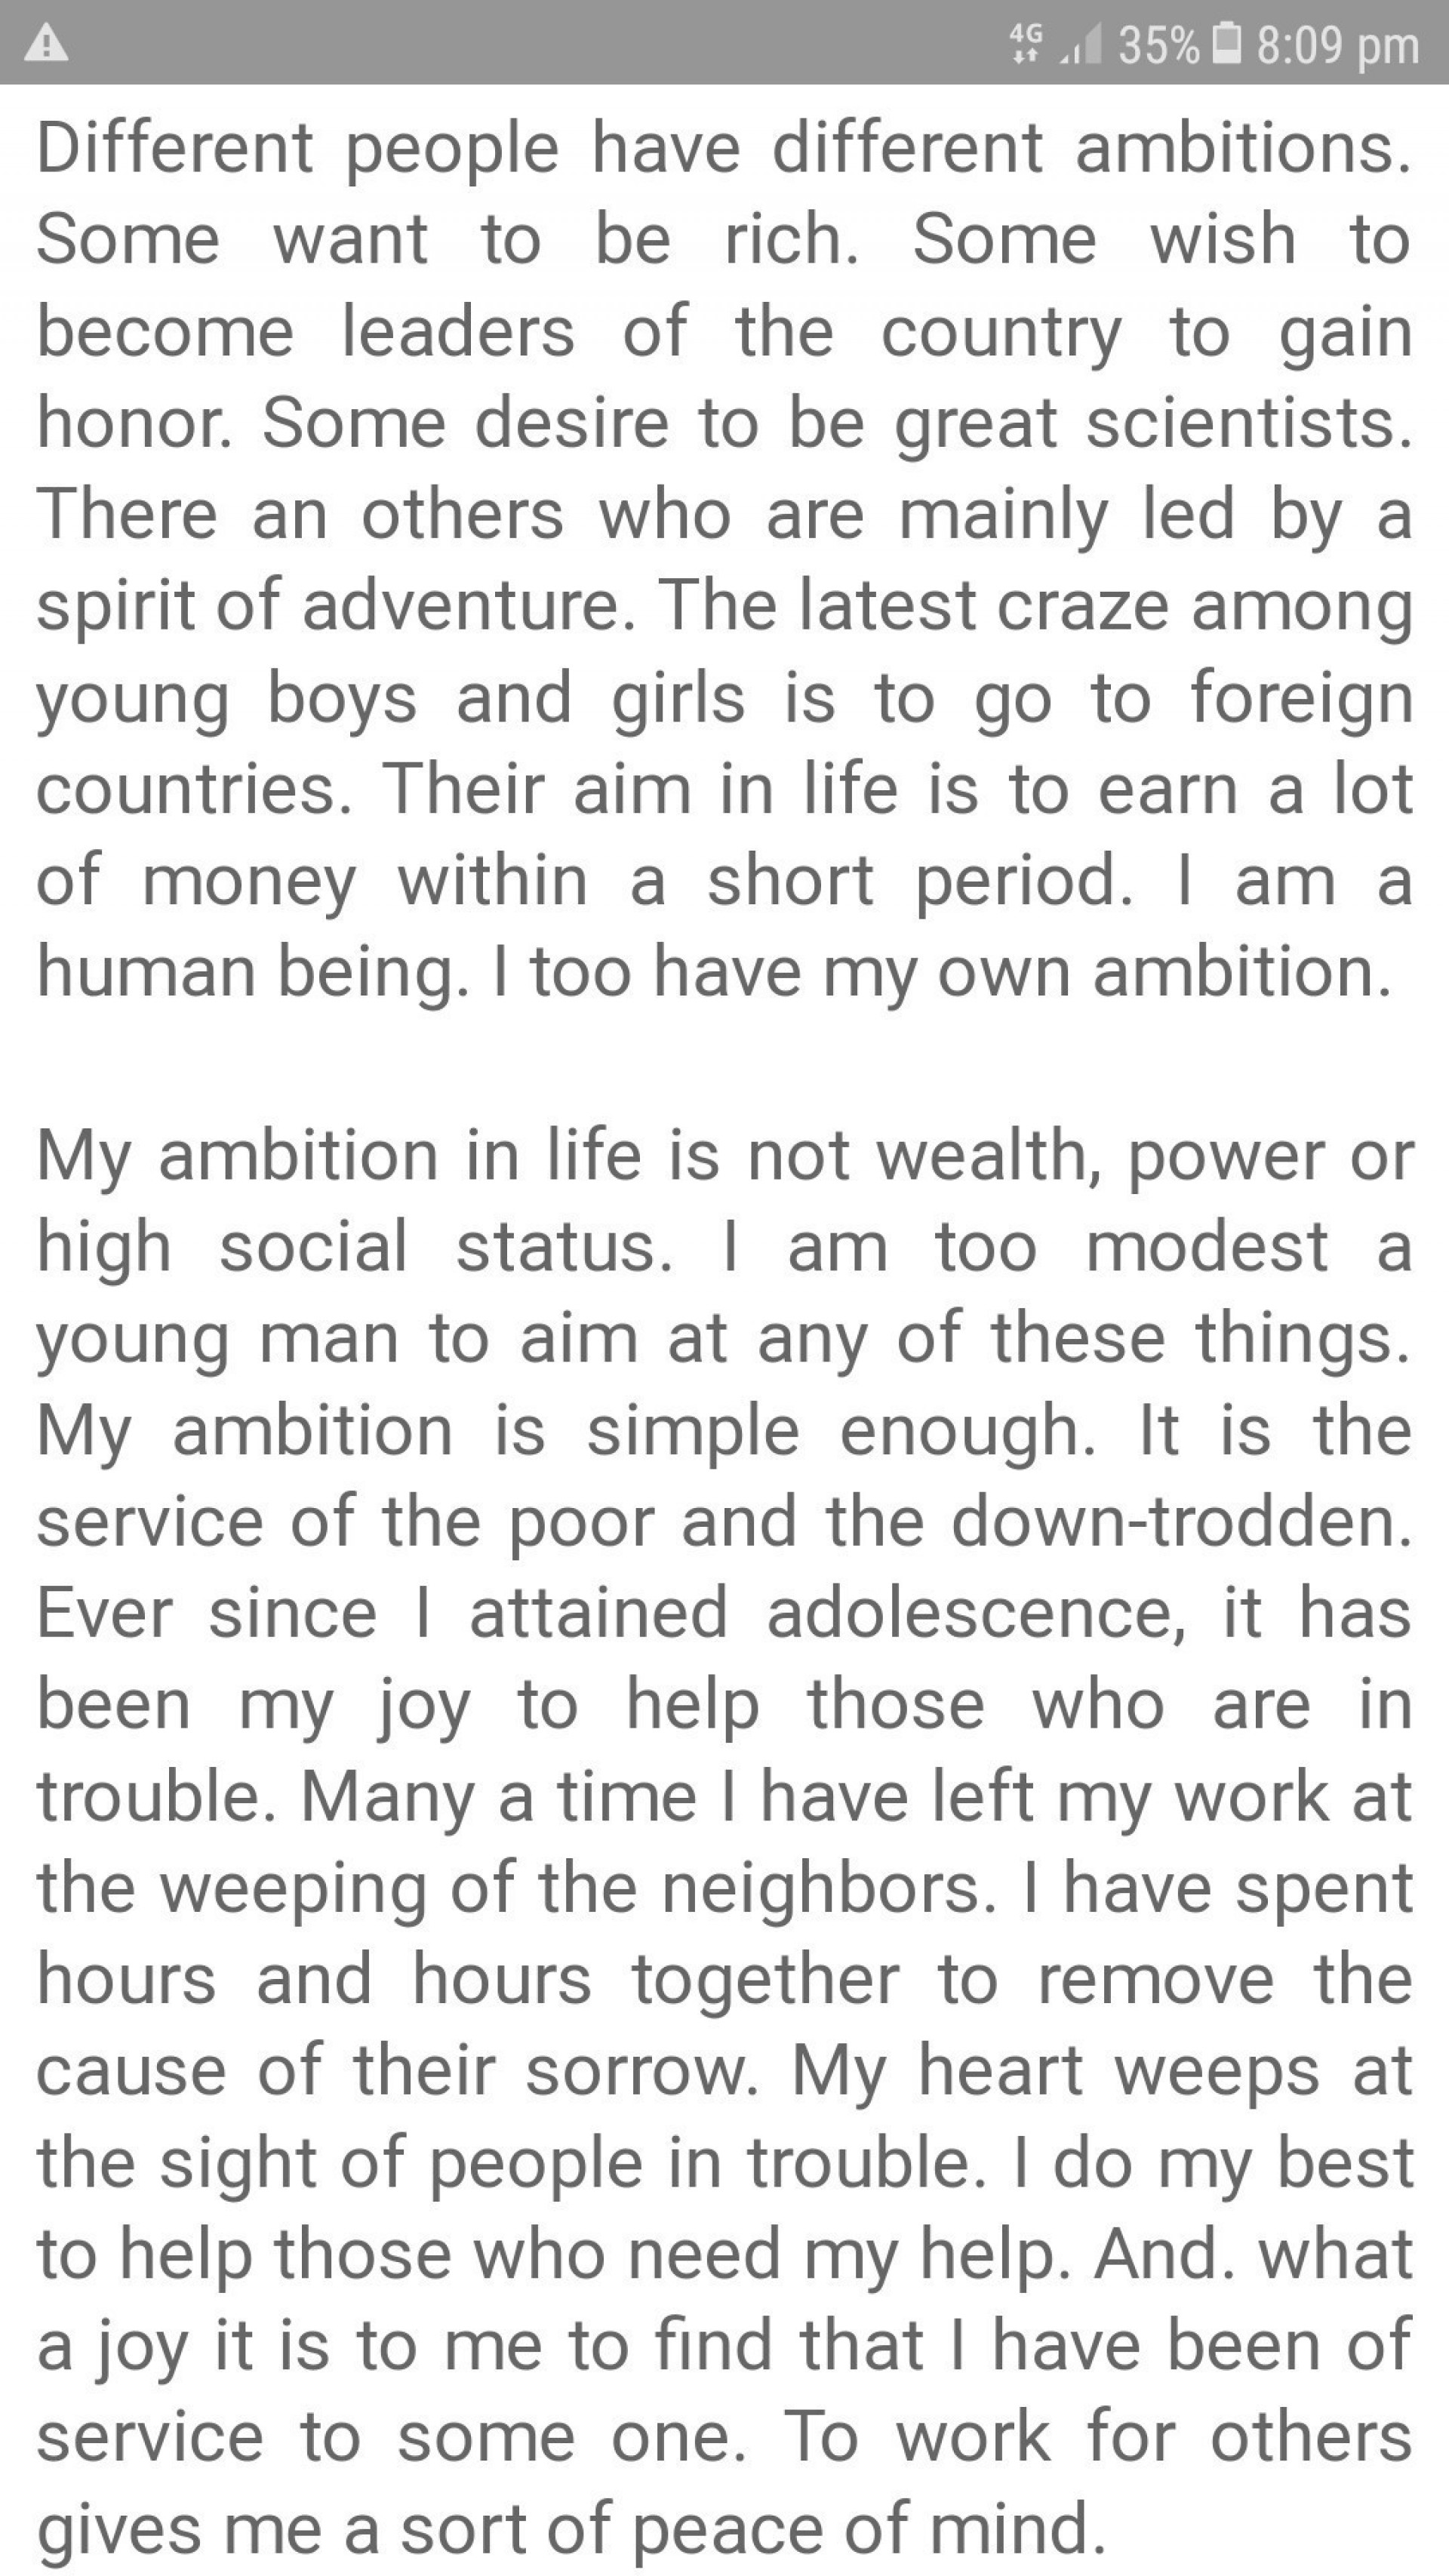 008 Essay Example Of Ambition Awesome On Lady Macbeth's Short My Life To Become A Pilot 1920